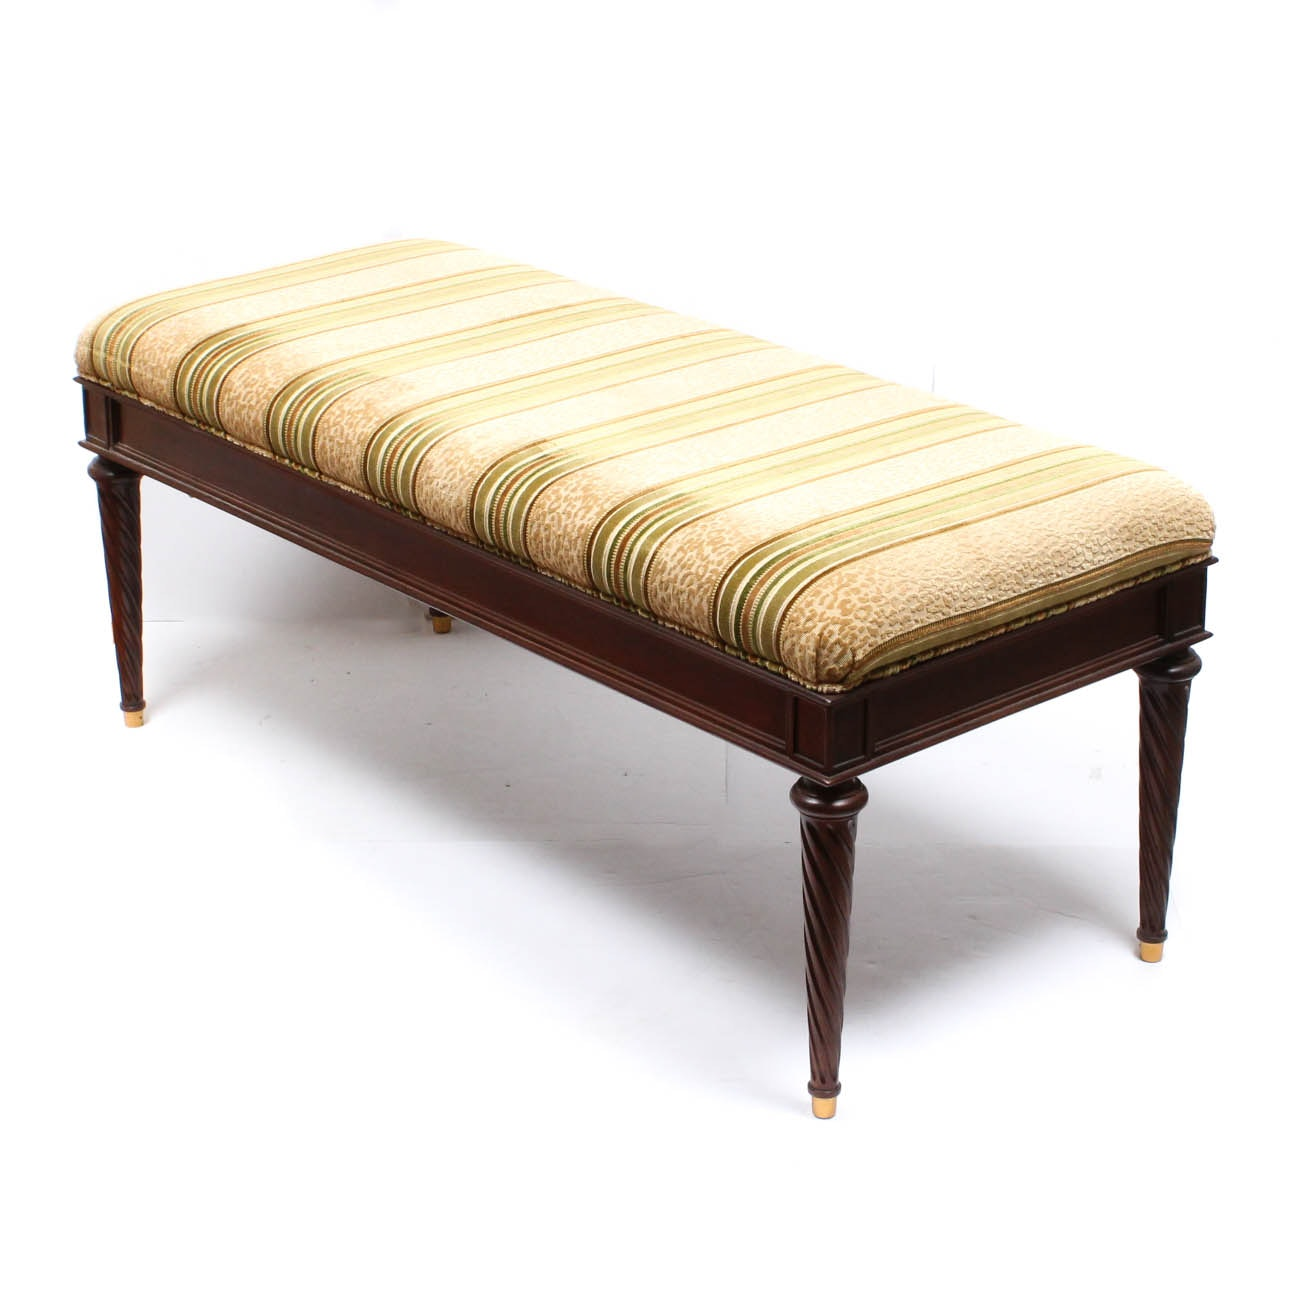 Upholstered Bench Seat from Hickory Chair